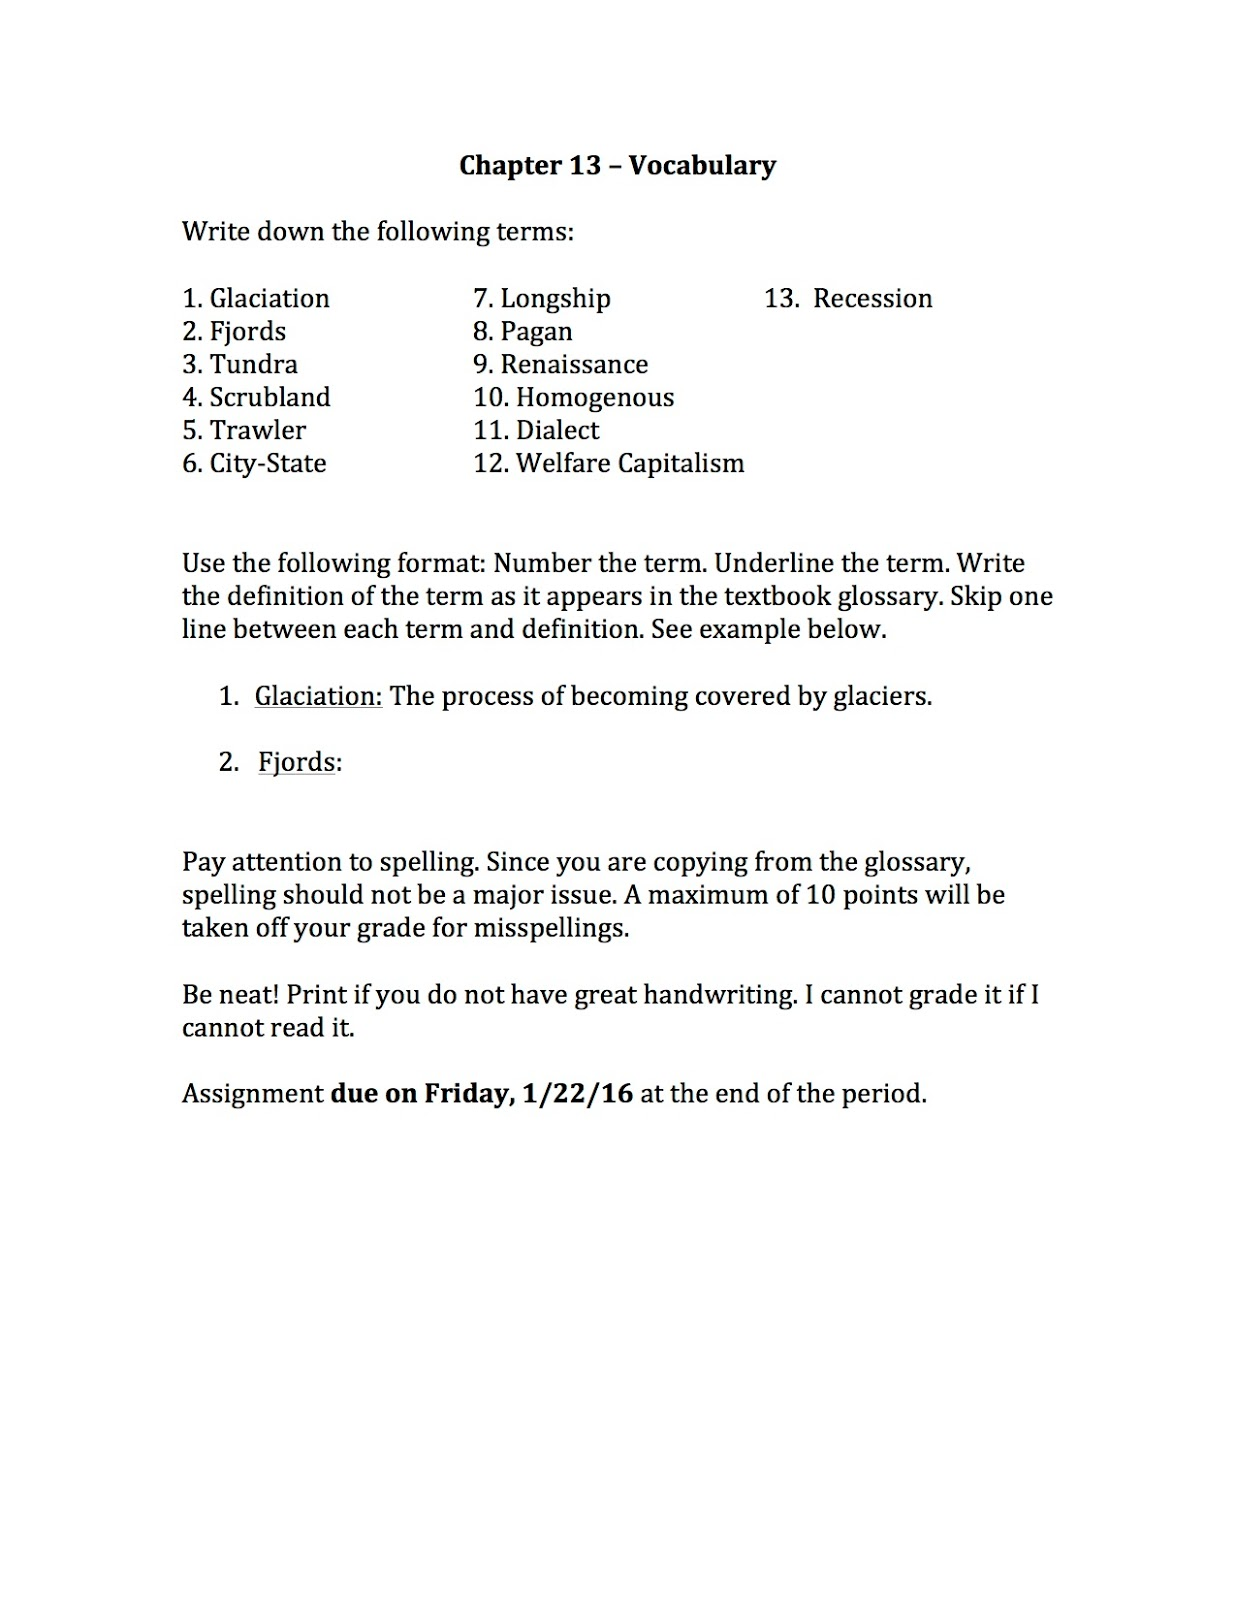 Worksheets Chapter 13 Worksheet ehms world cultures geography chapter 13 vocabulary assigned today we wrapped up lesson 1 from in the study guides i also for below are vocabul